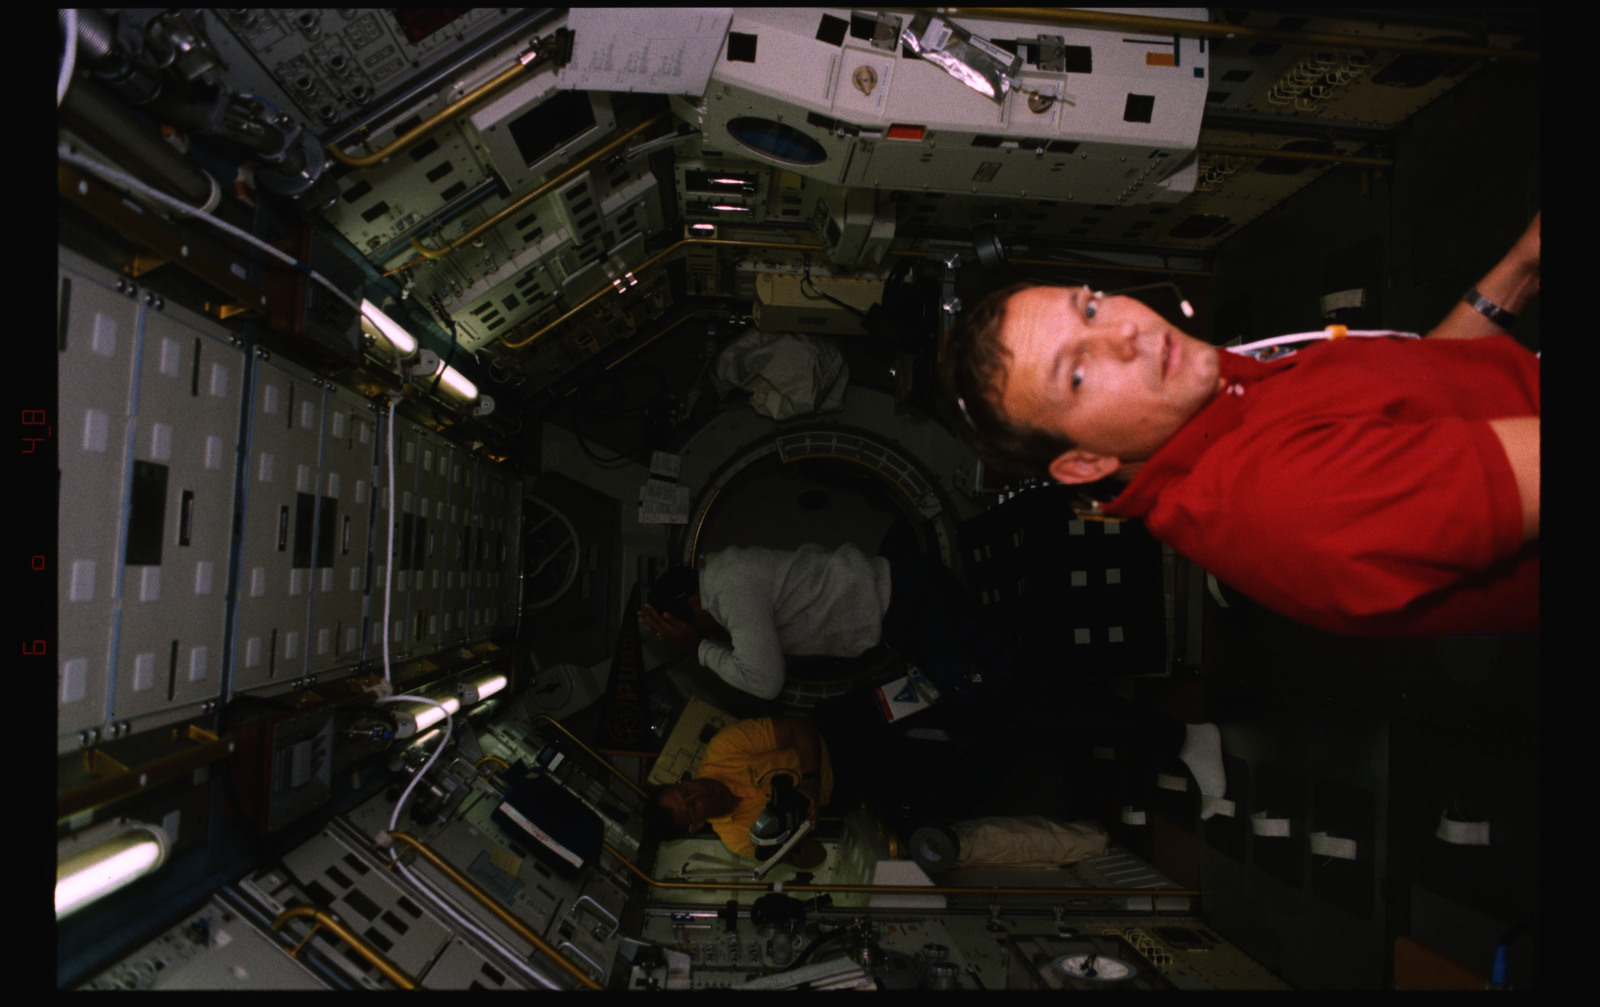 STS055-235-037 - STS-055 - Candid view of crewmembers at work in the D-2 Spacelab